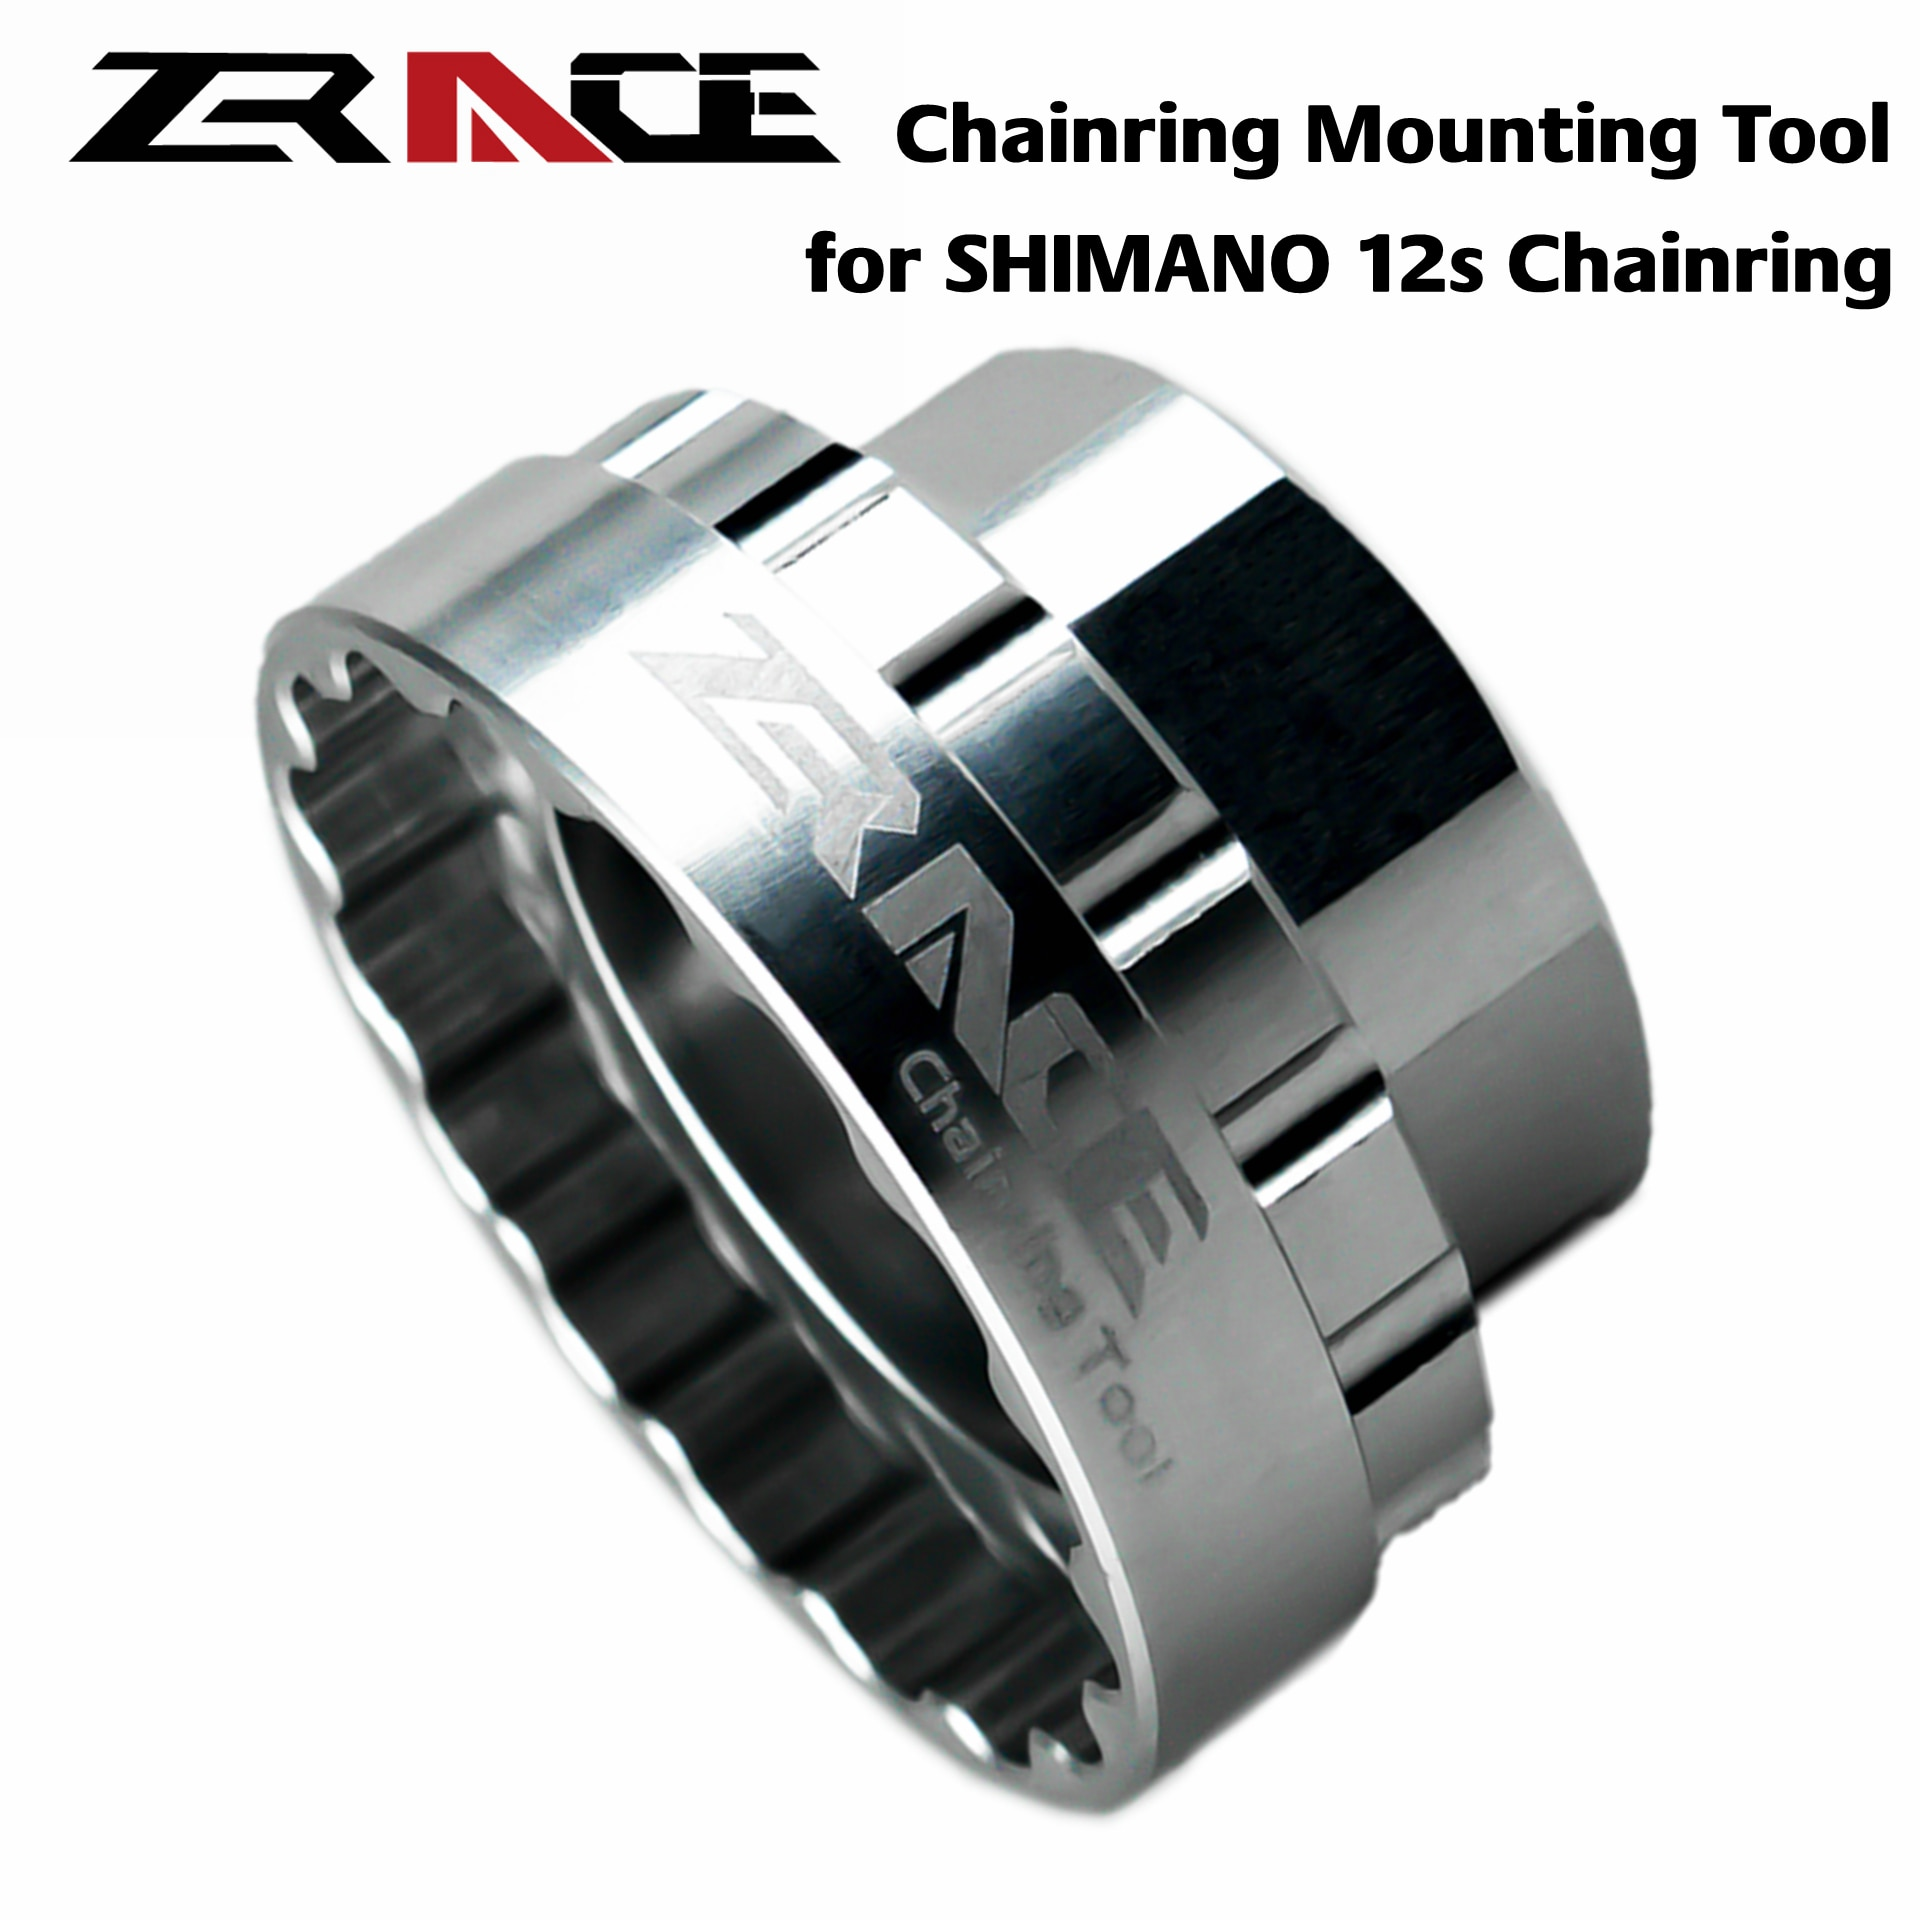 AliExpress - ZRACE Shimano 12s Chainrings Mounting Tool for SM-CRM95 / SM-CRM85 / SM-CRM75, TL-FC41 / FC41,Direct Mount Repair Tool Crankset